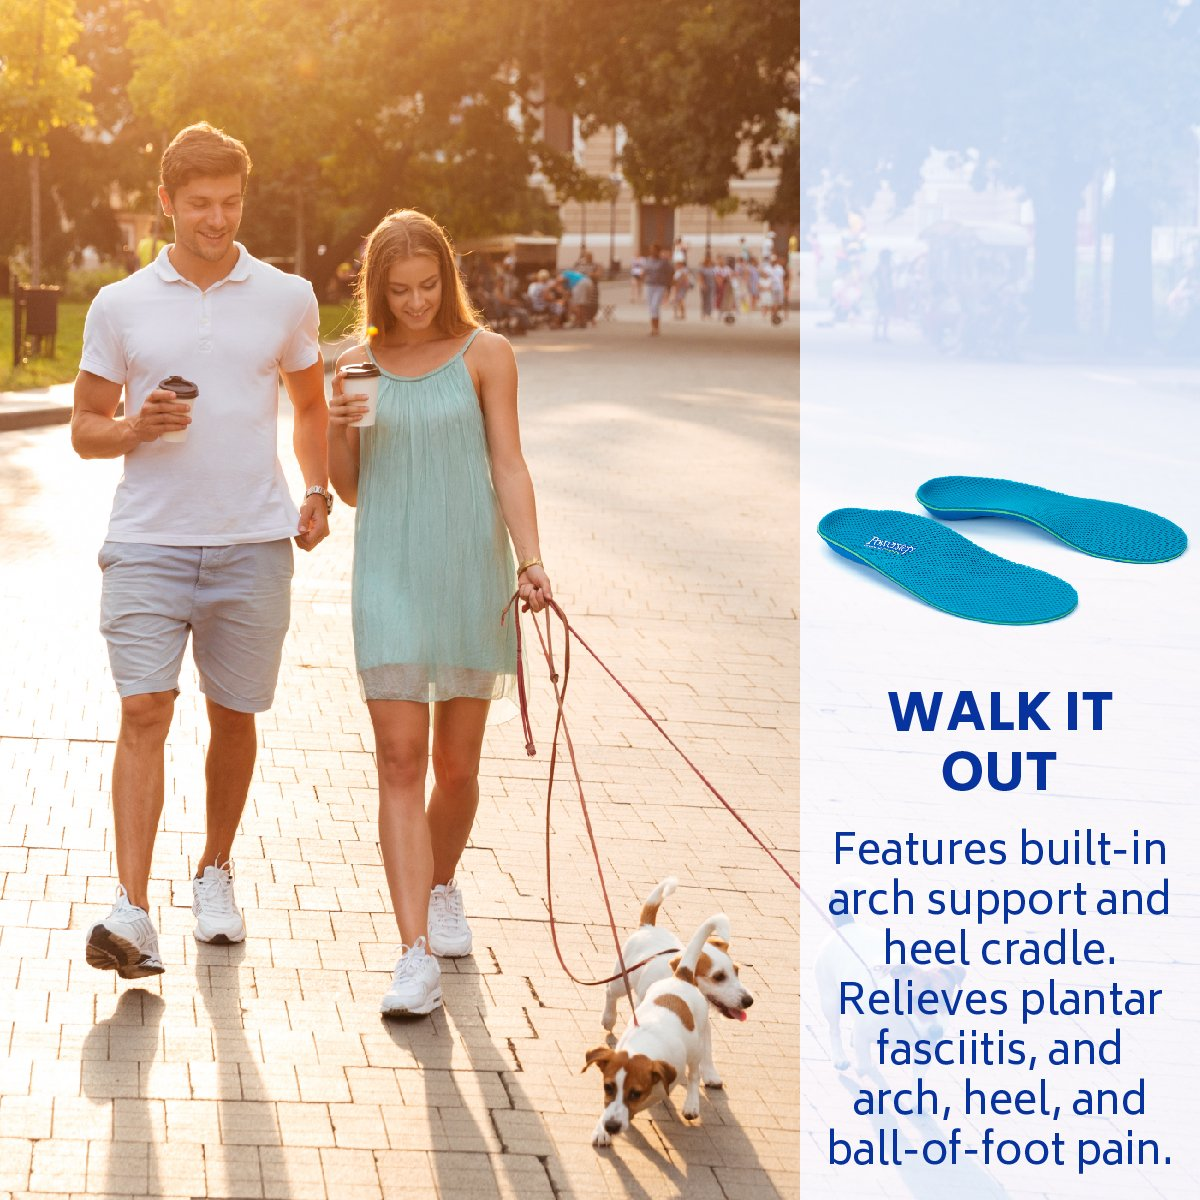 Powerstep Unisex-adult Pinnacle Breeze Shoe Insoles – Shock-Absorbing Arch Support and Cushioning for Plantar Fasciitis, Arch and Heel Pain, Flat Feet and Overpronation, Blue, Men's 7-7.5, Women's 9-9.5 by Powerstep (Image #5)